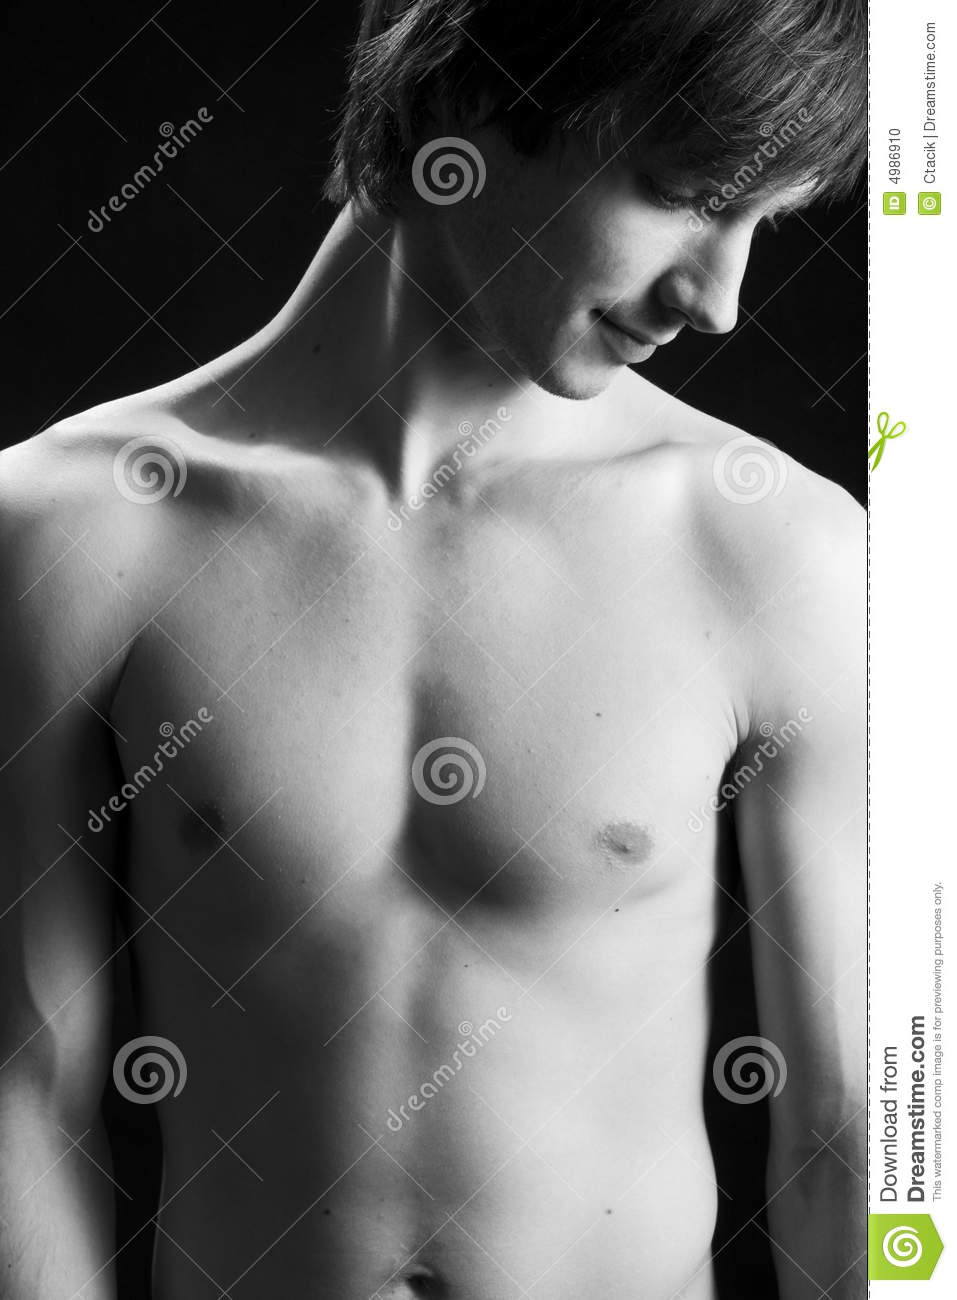 Shot of a male torso